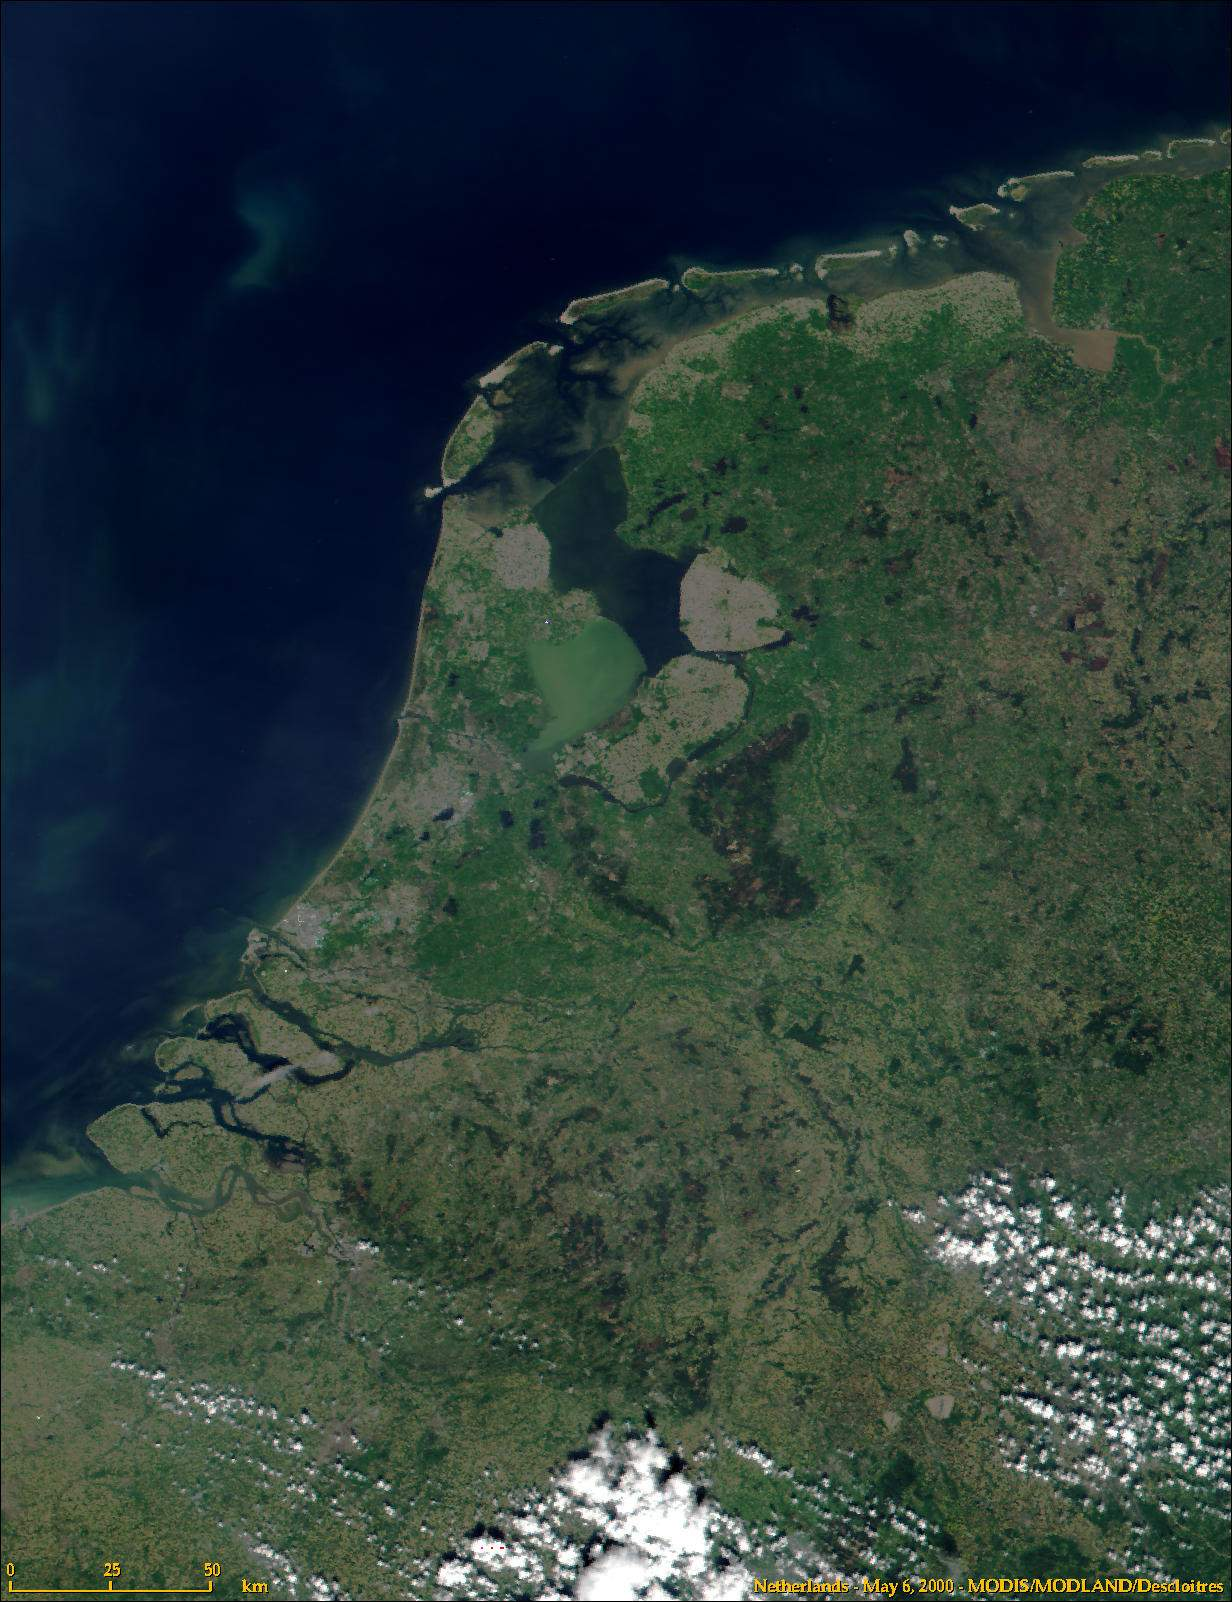 Satellite Image of the Netherlands In May 2000